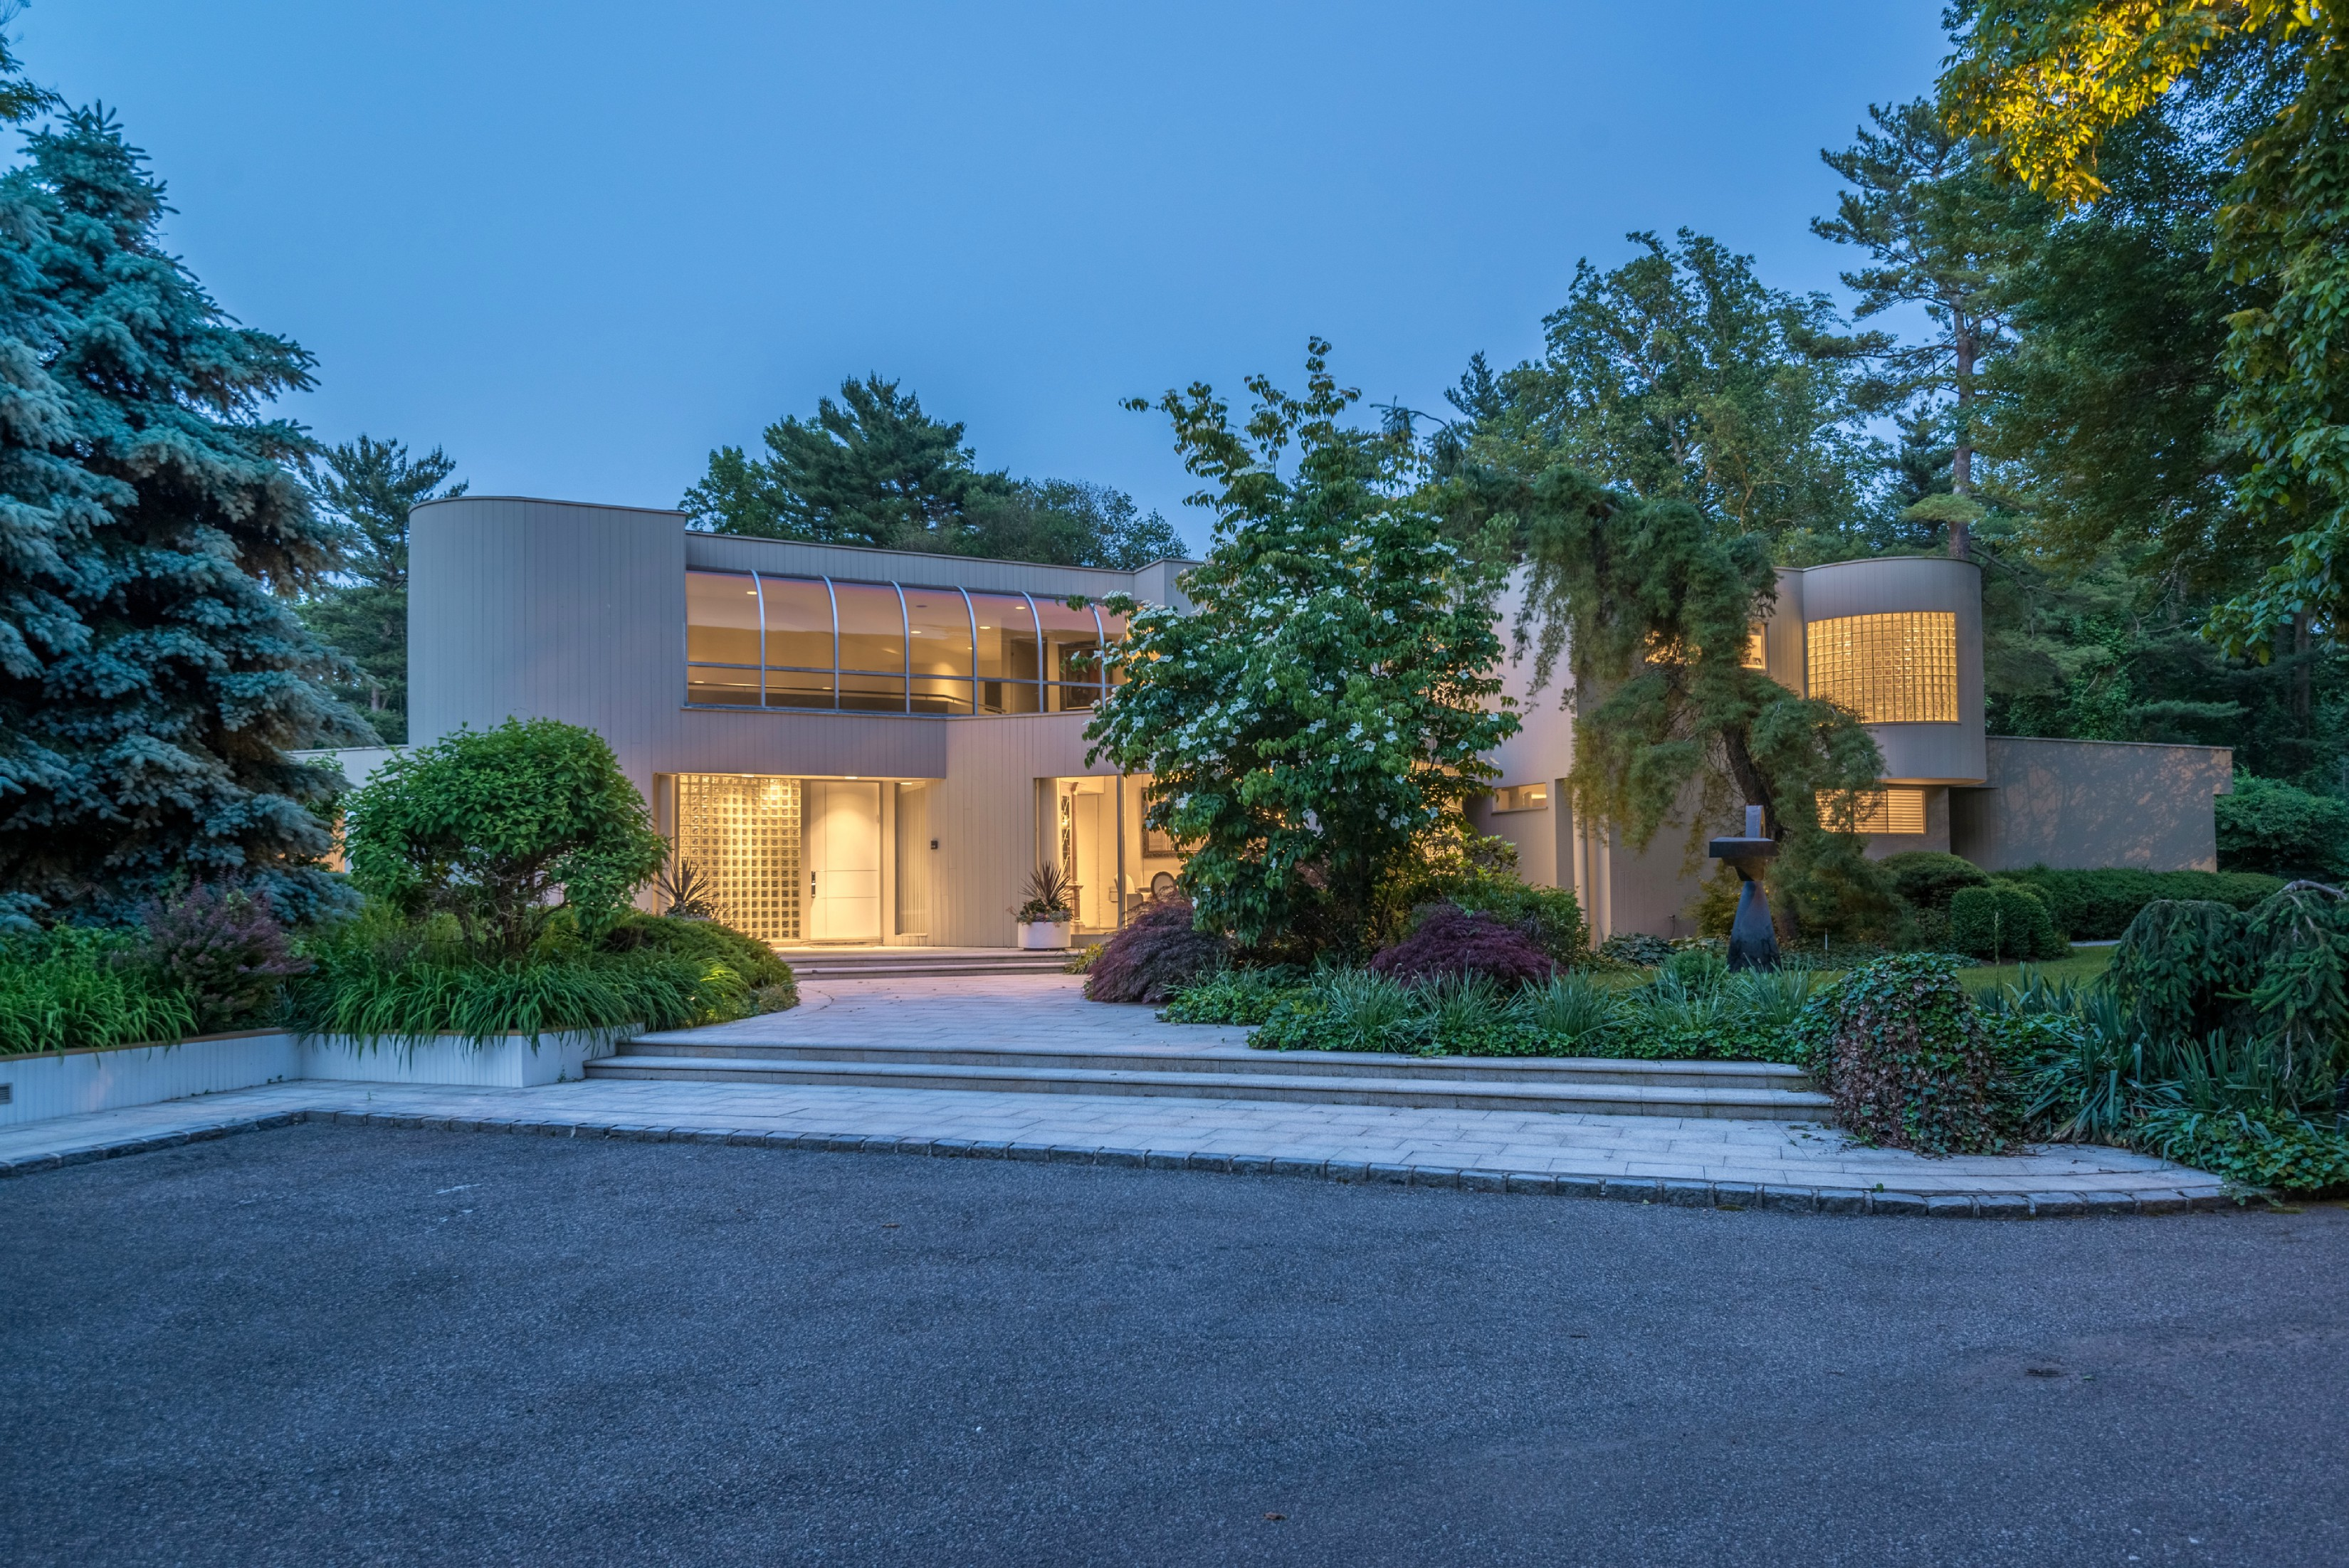 Old Westbury. Spectacular Contemporary With Two-Story Entry, Soaring Ceilings And Cascading Walls Of Glass Throughout. This 5-Bedroom, 5.5 Bath Home Is Set On Four Acres Of Property Which Include Expansive Patios And Decks, Pool With Separate Jacuzzi, Cabana And Har-Tru Tennis Court.